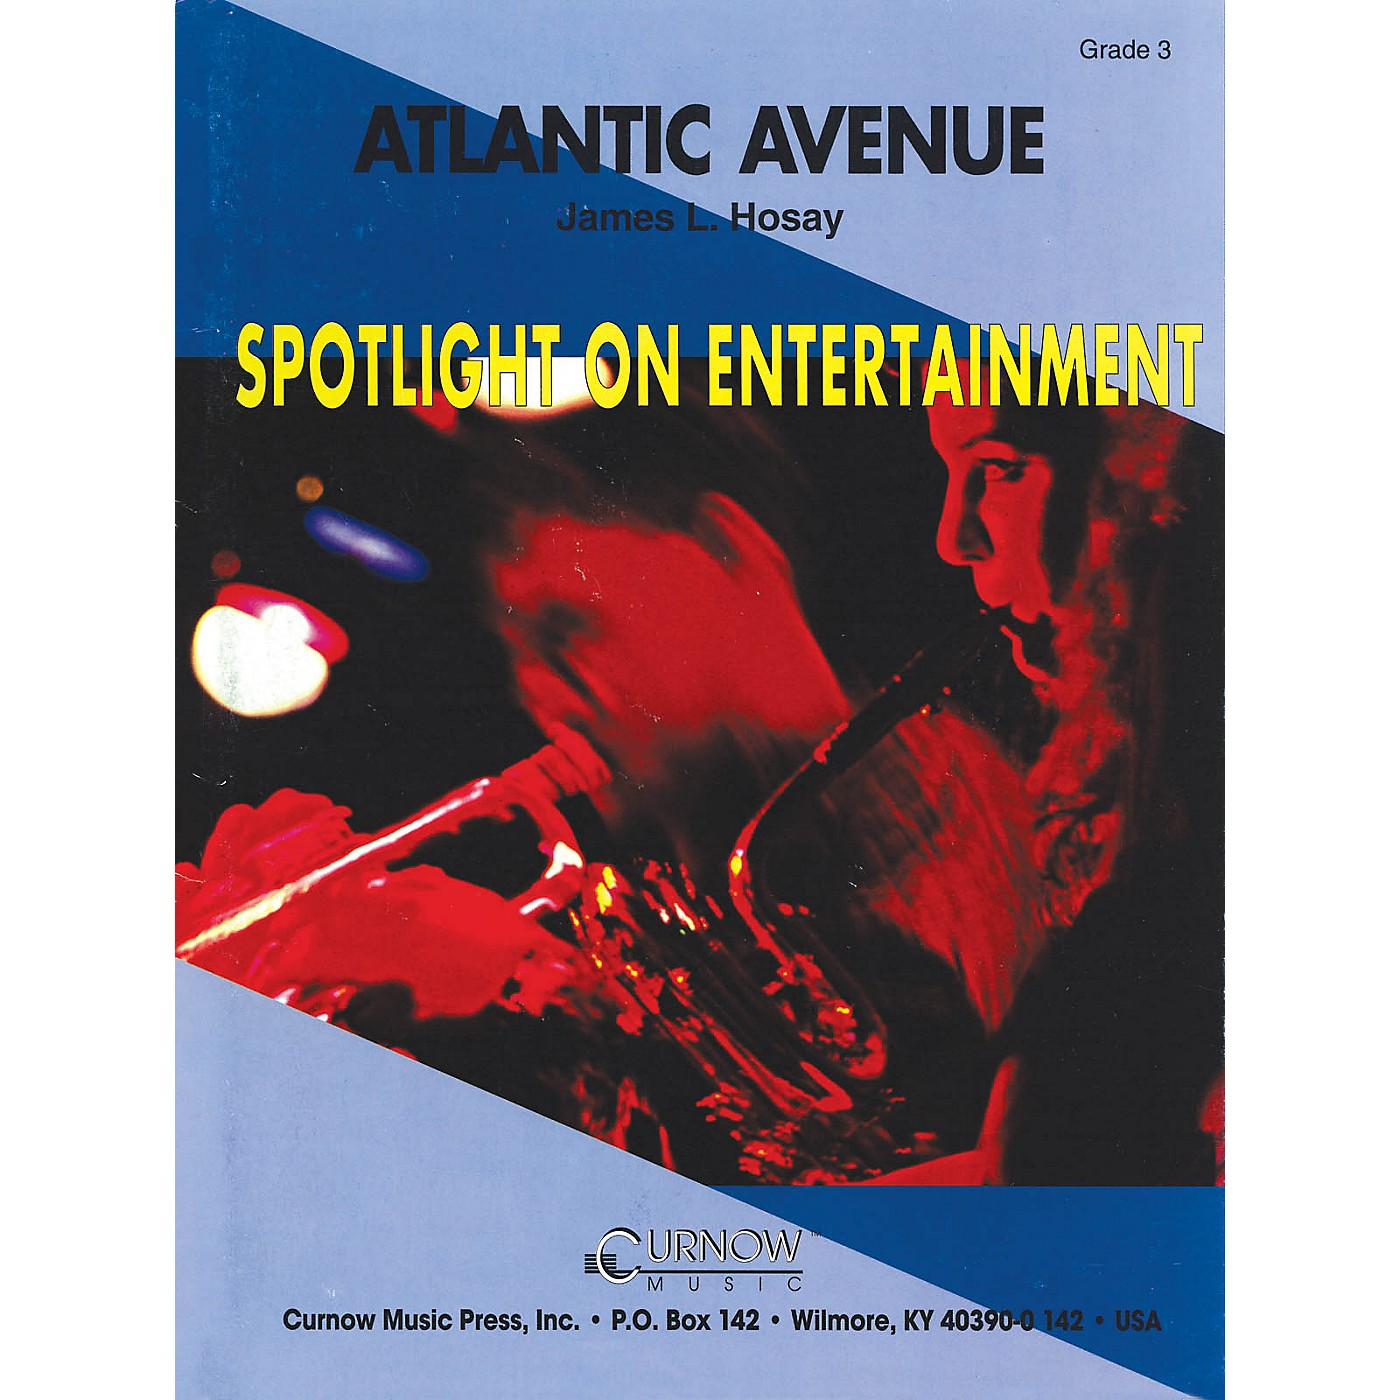 Hal Leonard Atlantic Avenue (Grade 3 - Score Only) Concert Band Level 3 Composed by James L. Hosay thumbnail